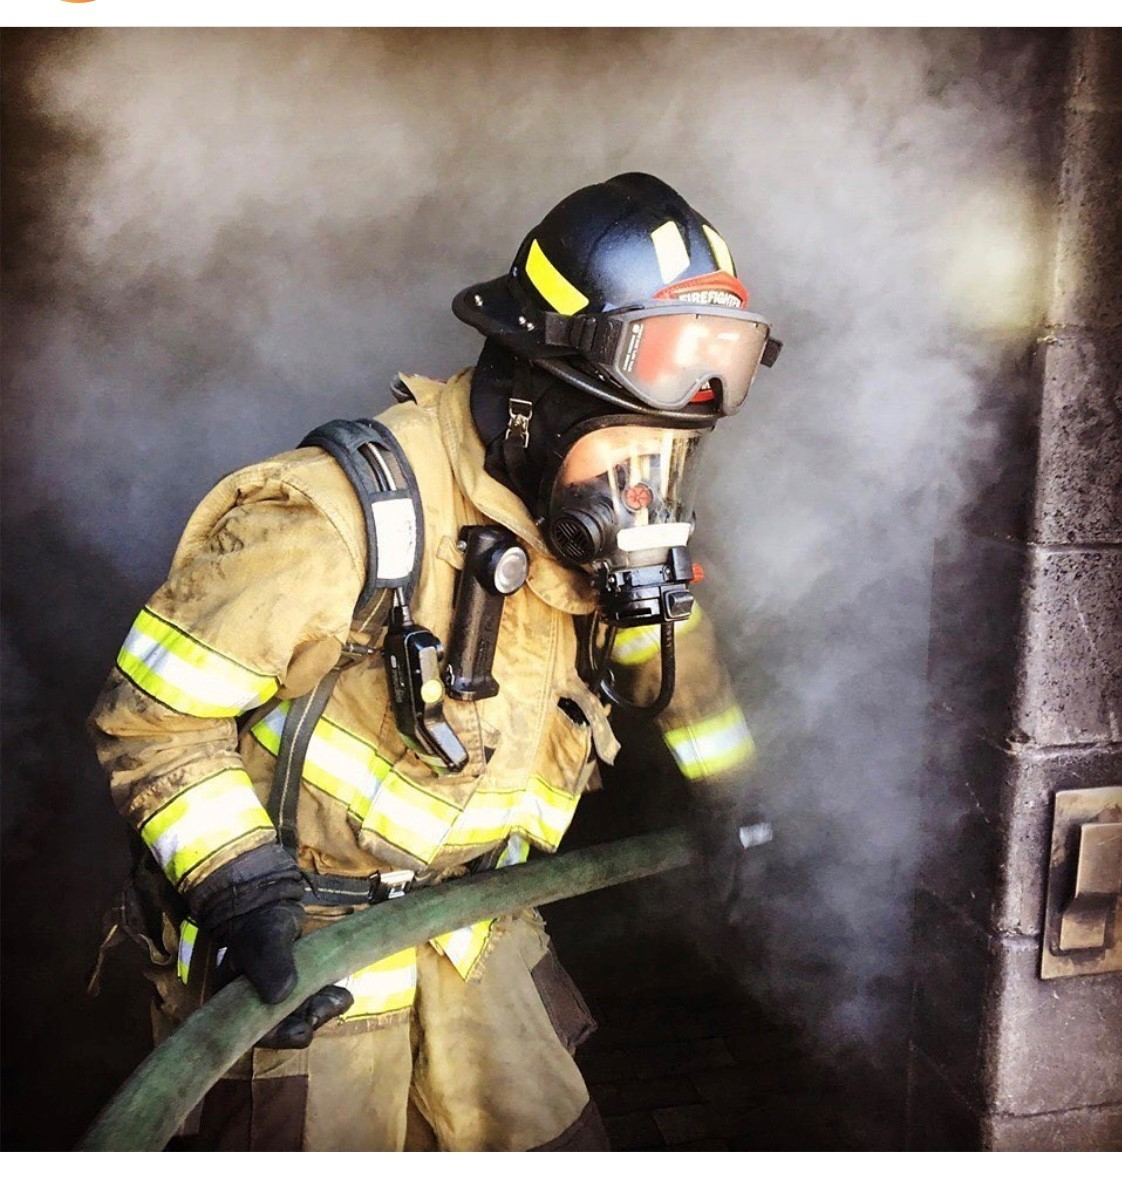 Smokey room with firefighter in full PPE